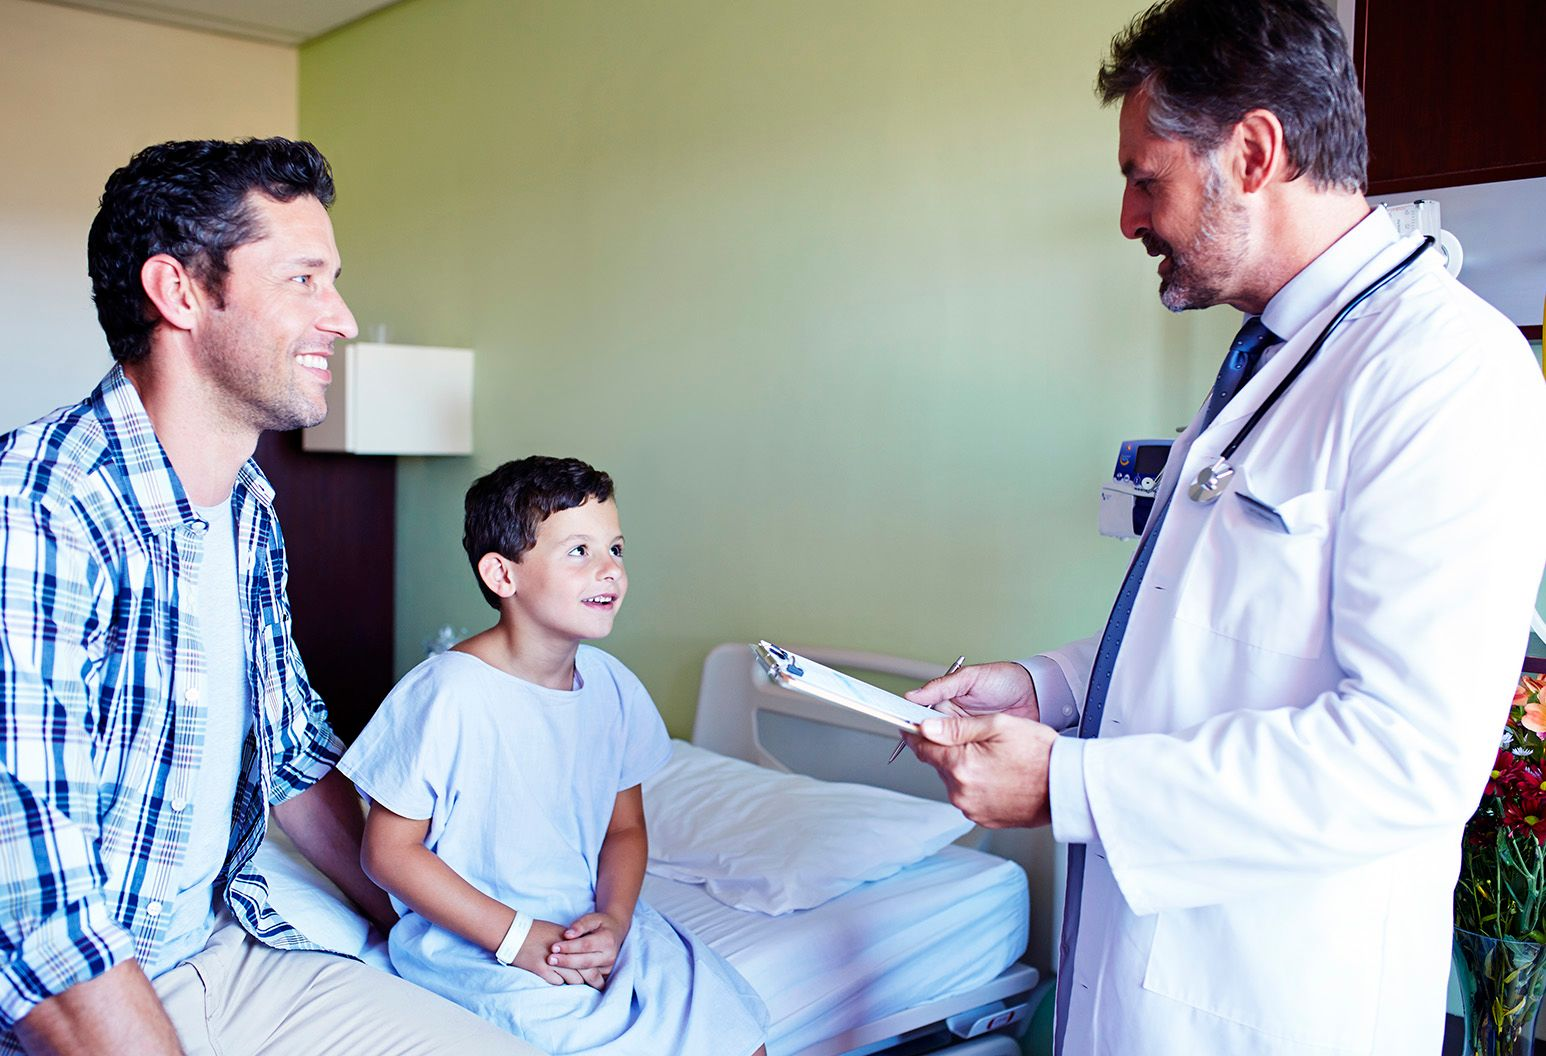 A little boy wearing a hospital gown sits on a bed in a patient room next to his father. They are talking to a male doctor, who is standing beside the bed and holding a clipboard.